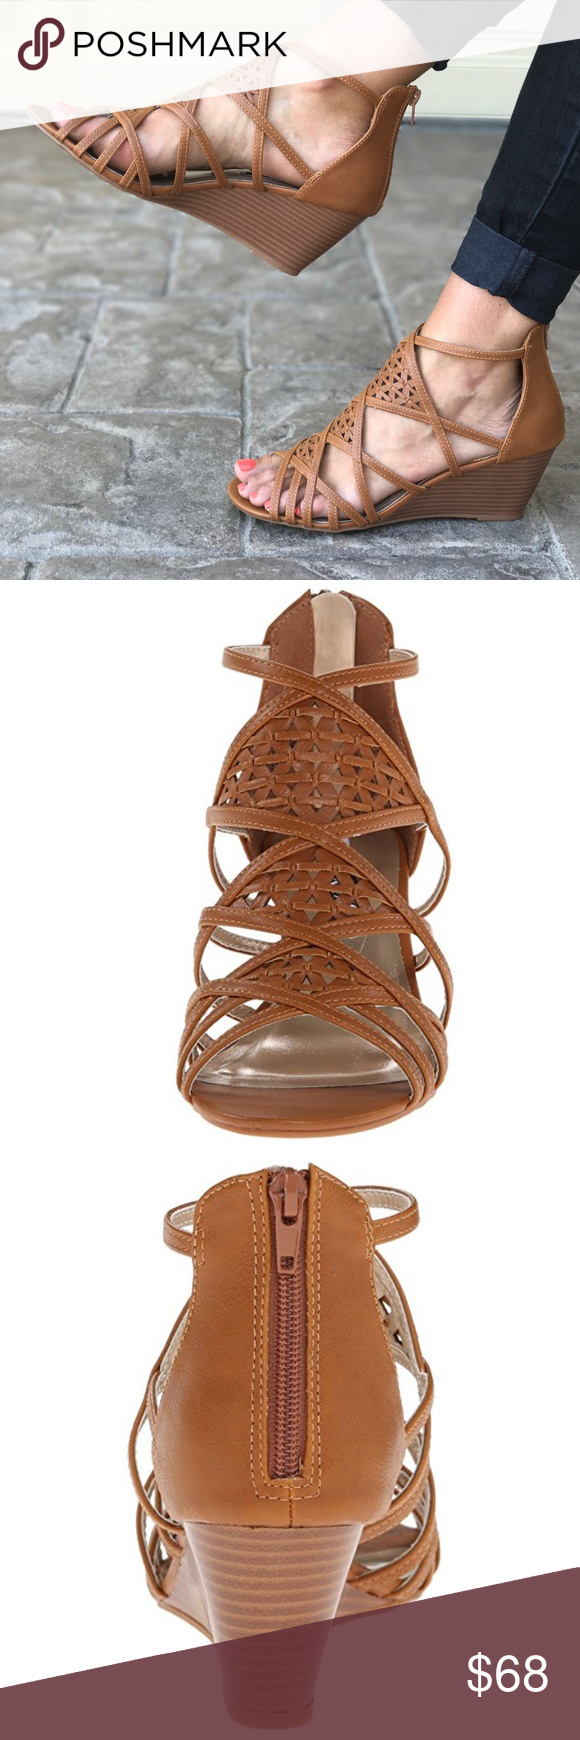 003bceb9ac Caged Perforated Small Wedge Sandal A geometric weave gives lithe straps wedge  sandal, which features